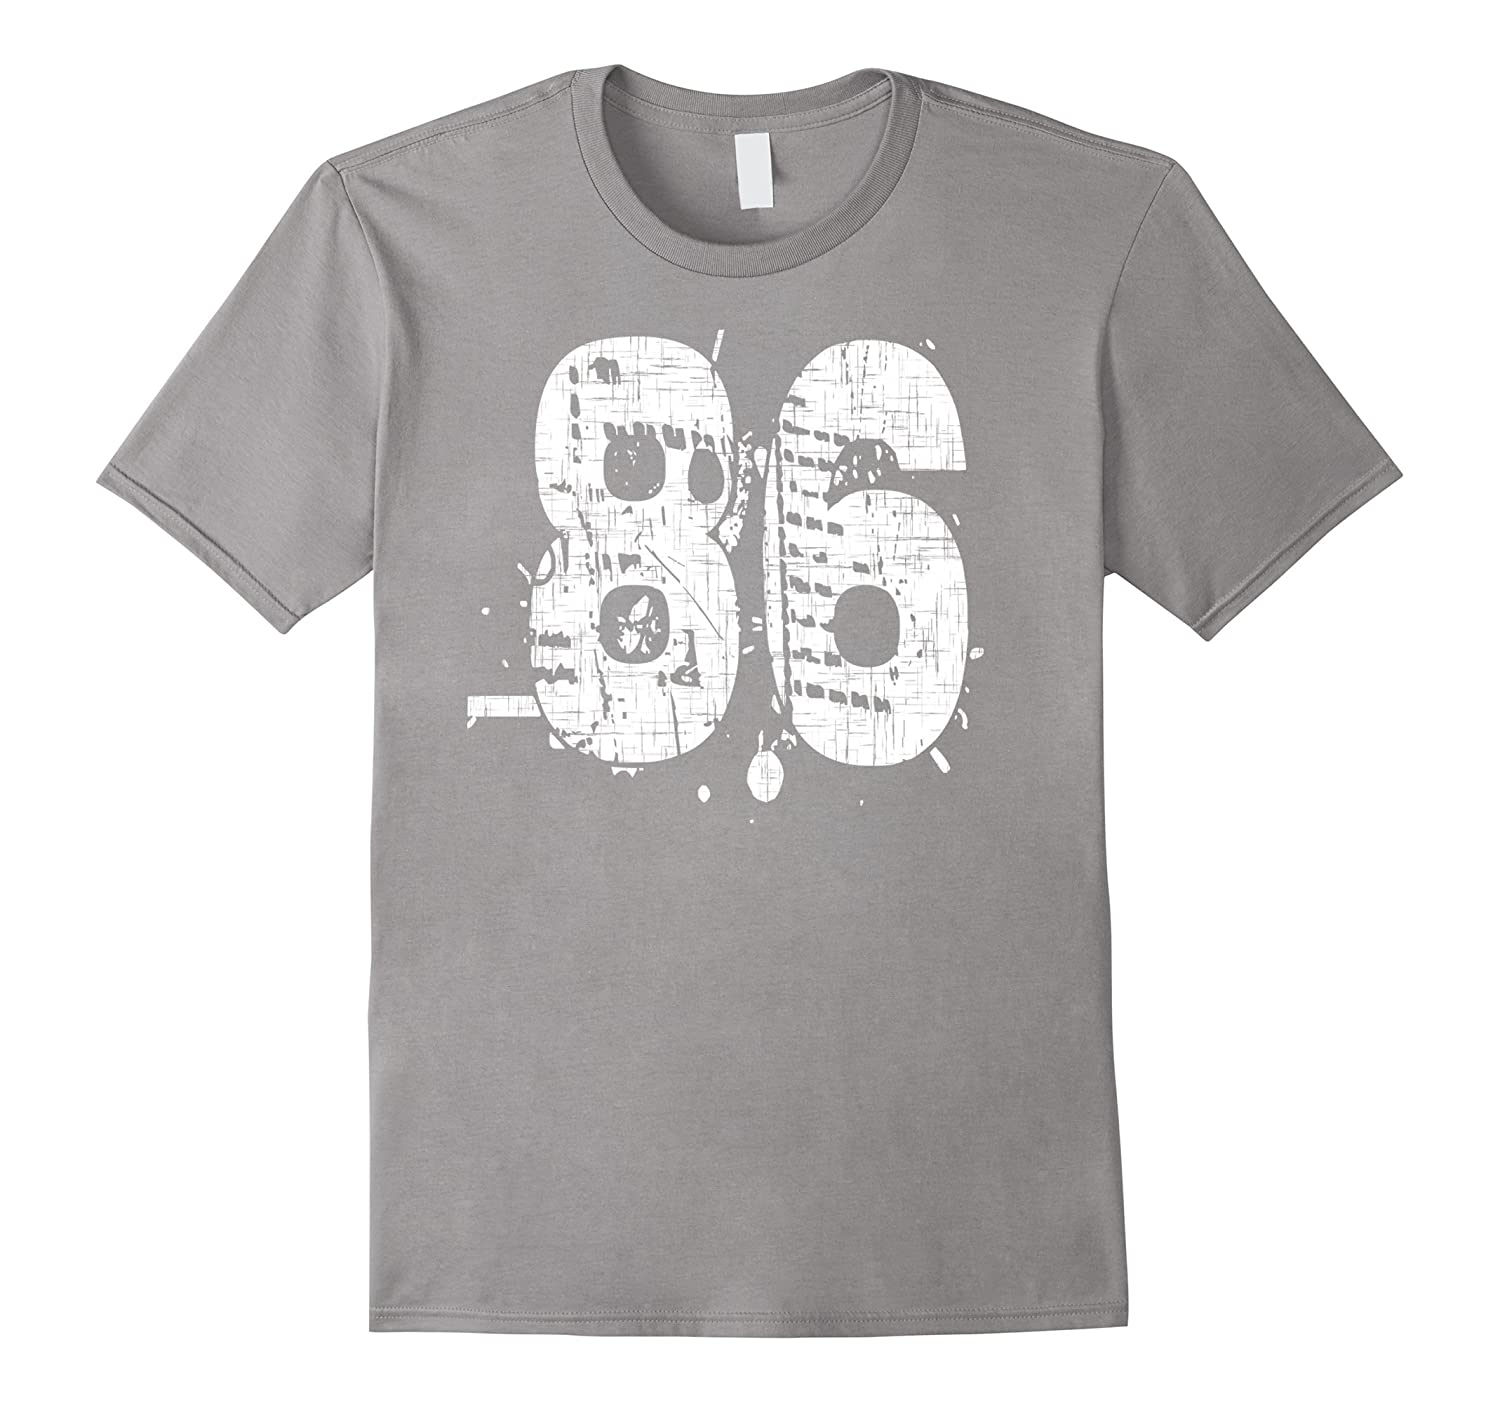 86 Numbered T-Shirt printed front and back in super grunge-PL